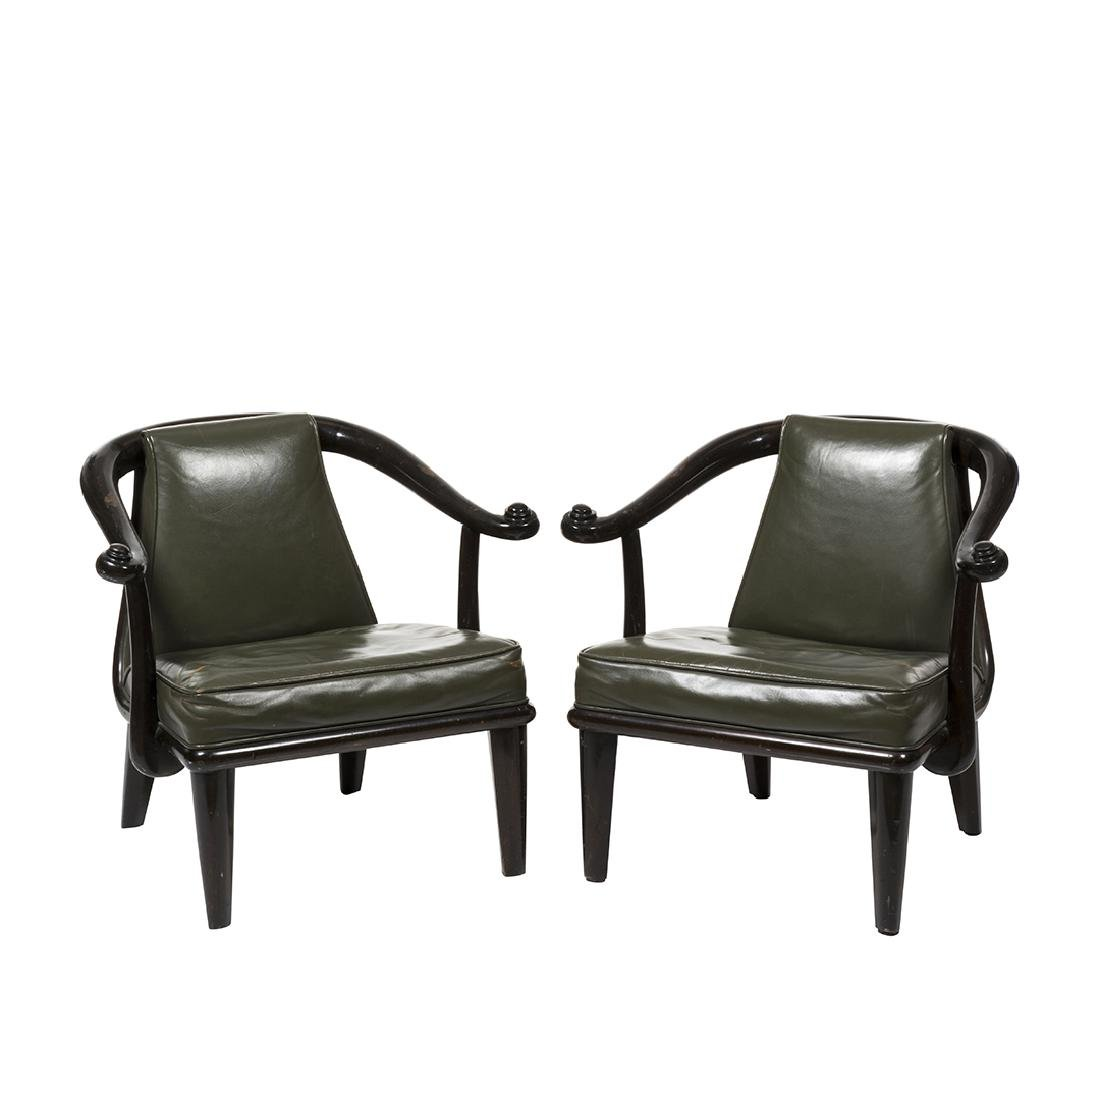 Monteverdi Young Lounge Chairs (2)